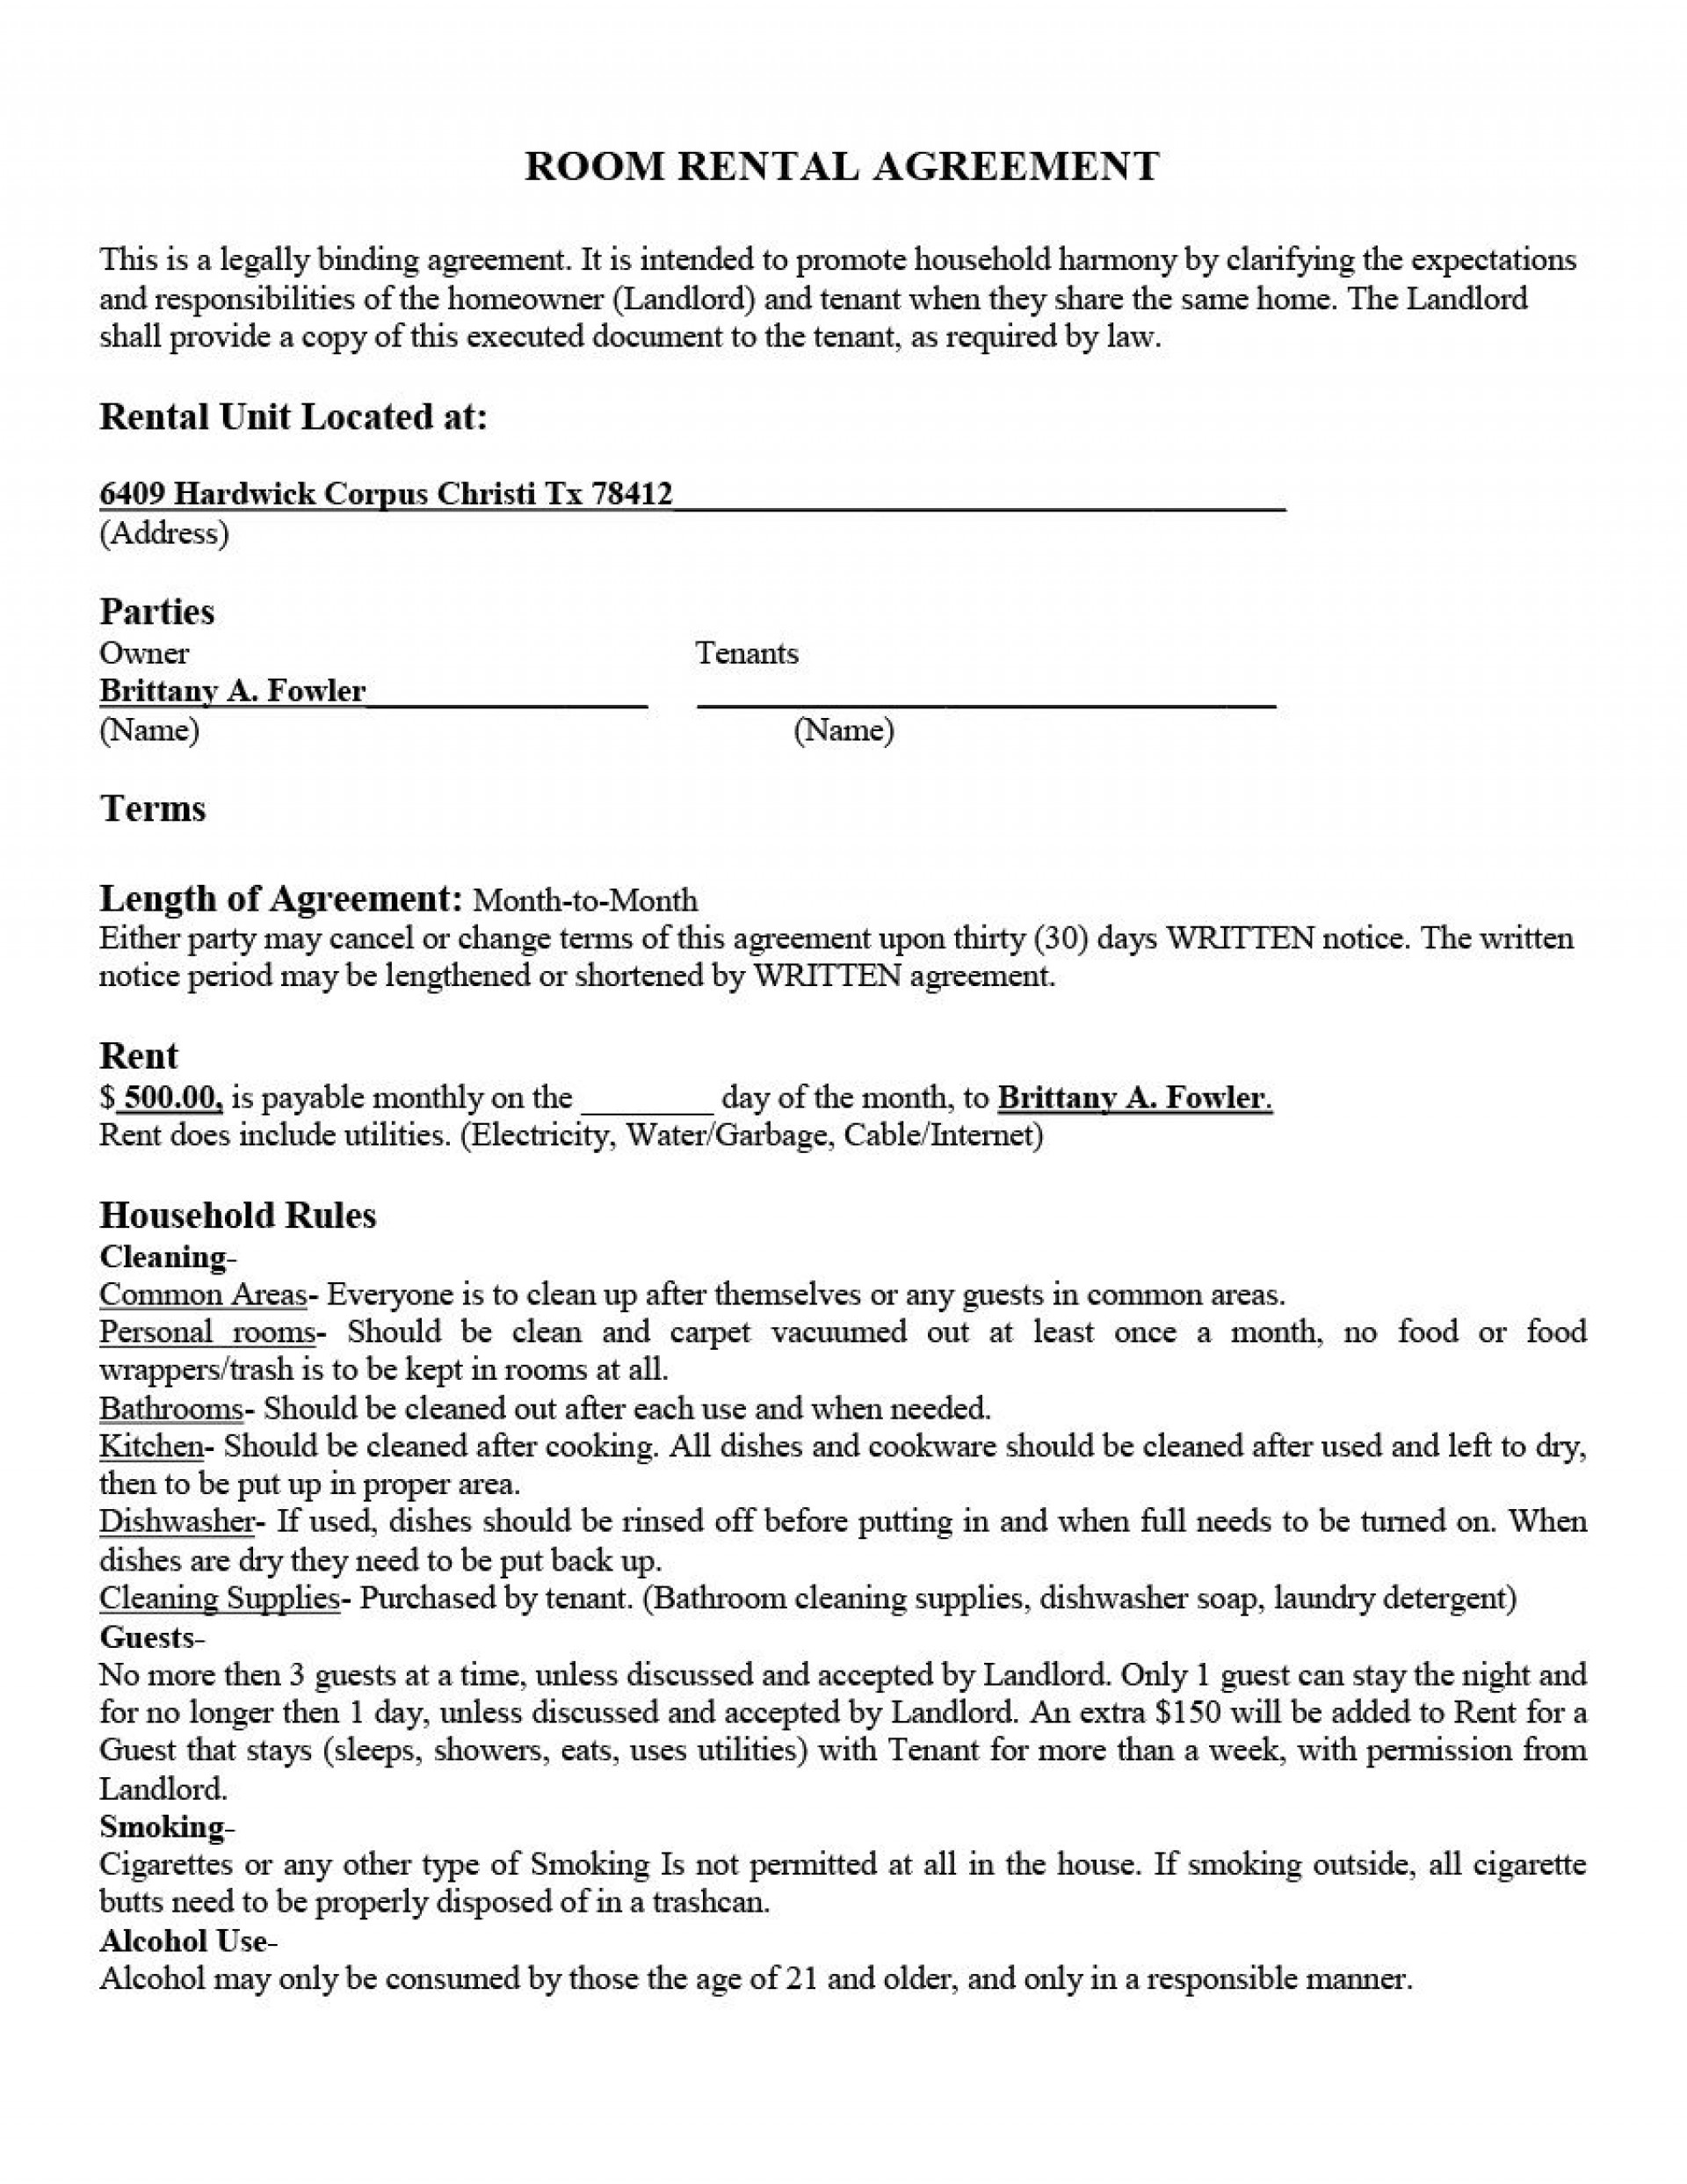 008 Fearsome Generic Room Rental Agreement Free High Definition  Printable1920